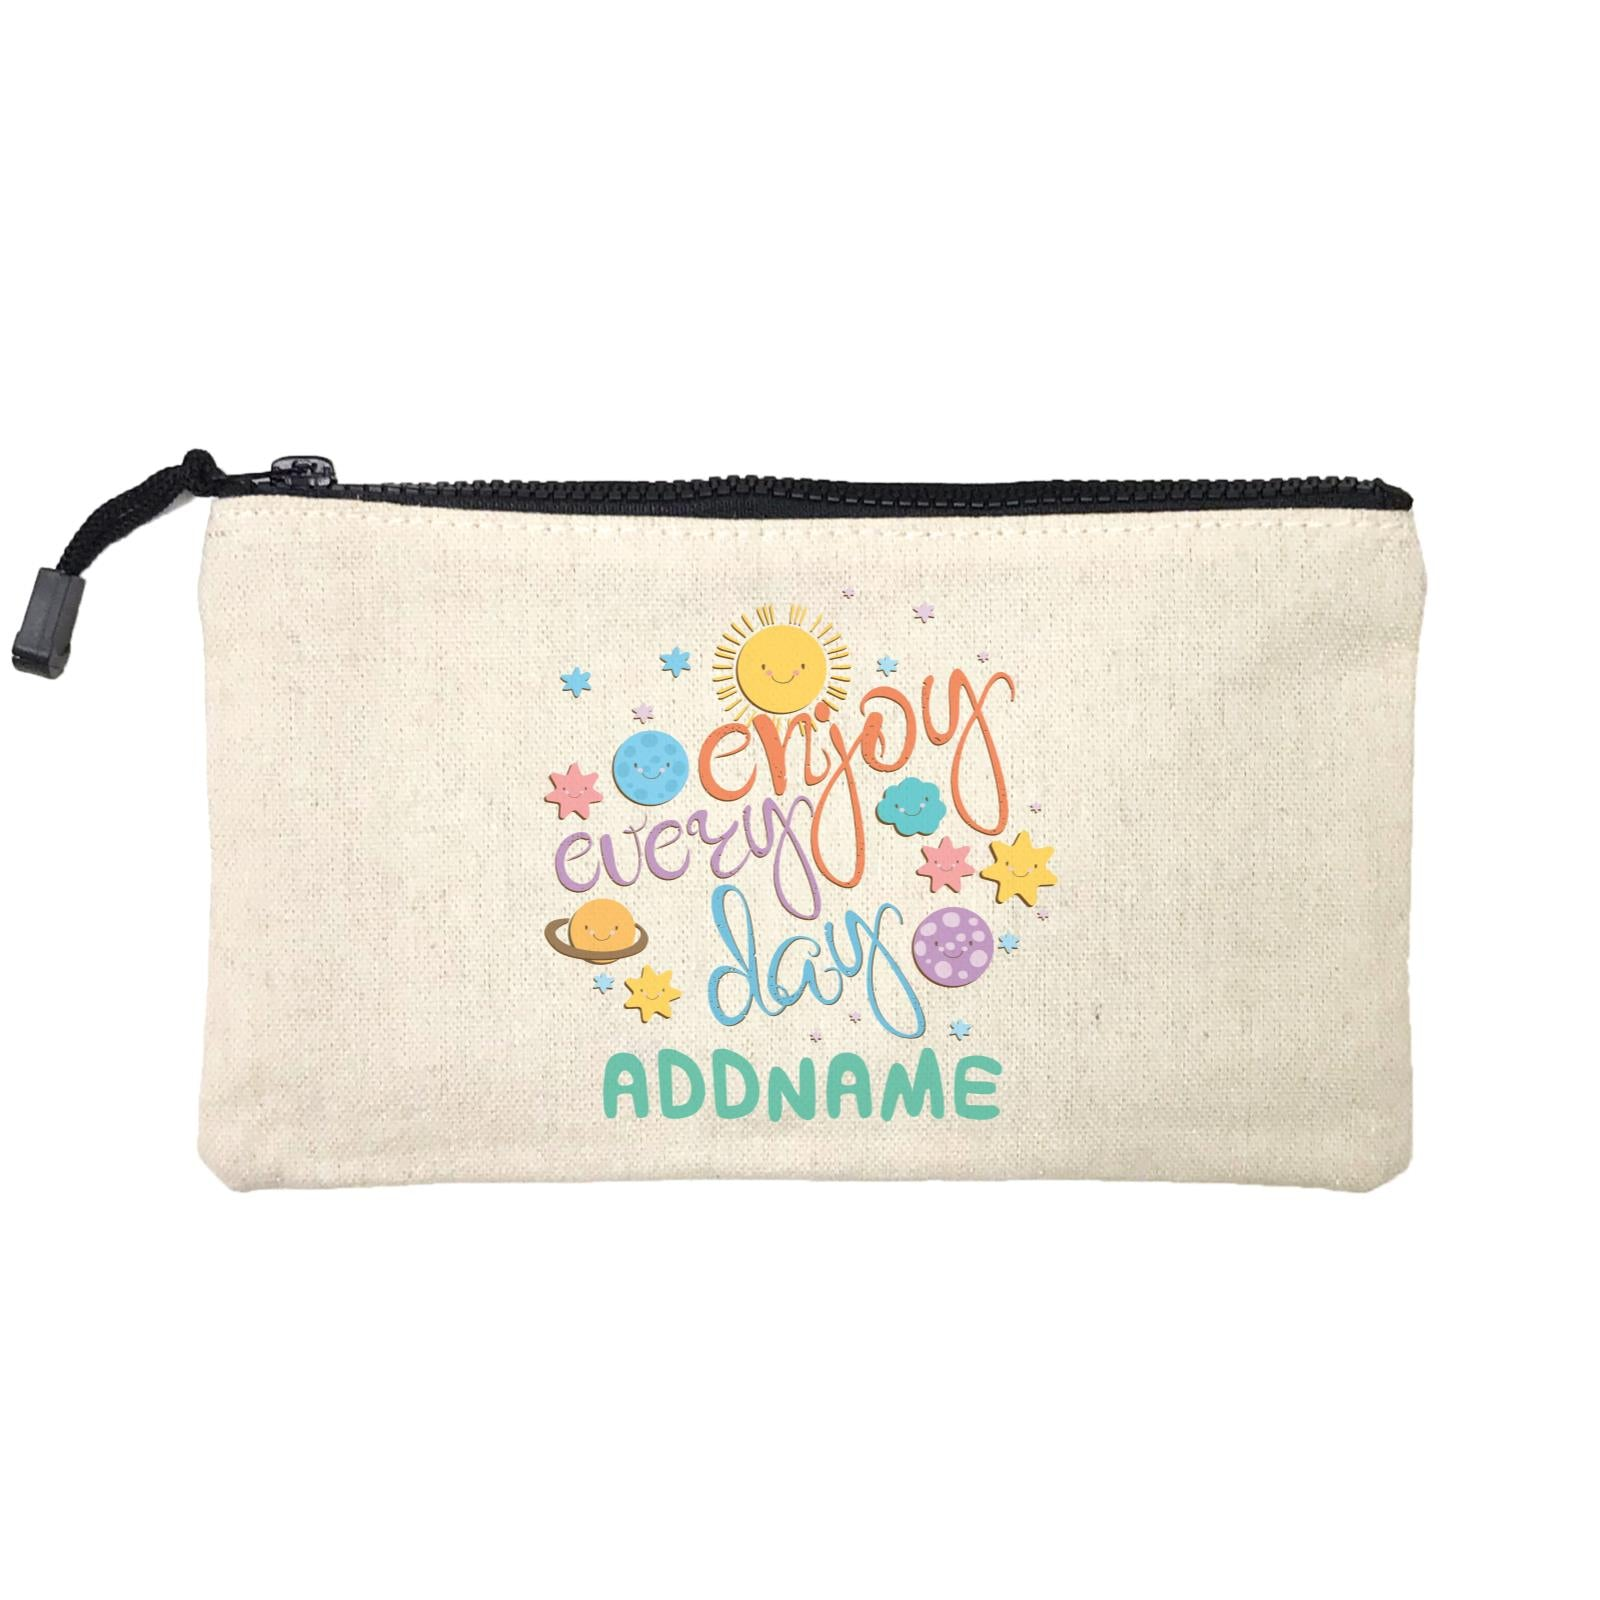 Children's Day Gift Series Enjoy Every Day Space Addname SP Stationery Pouch